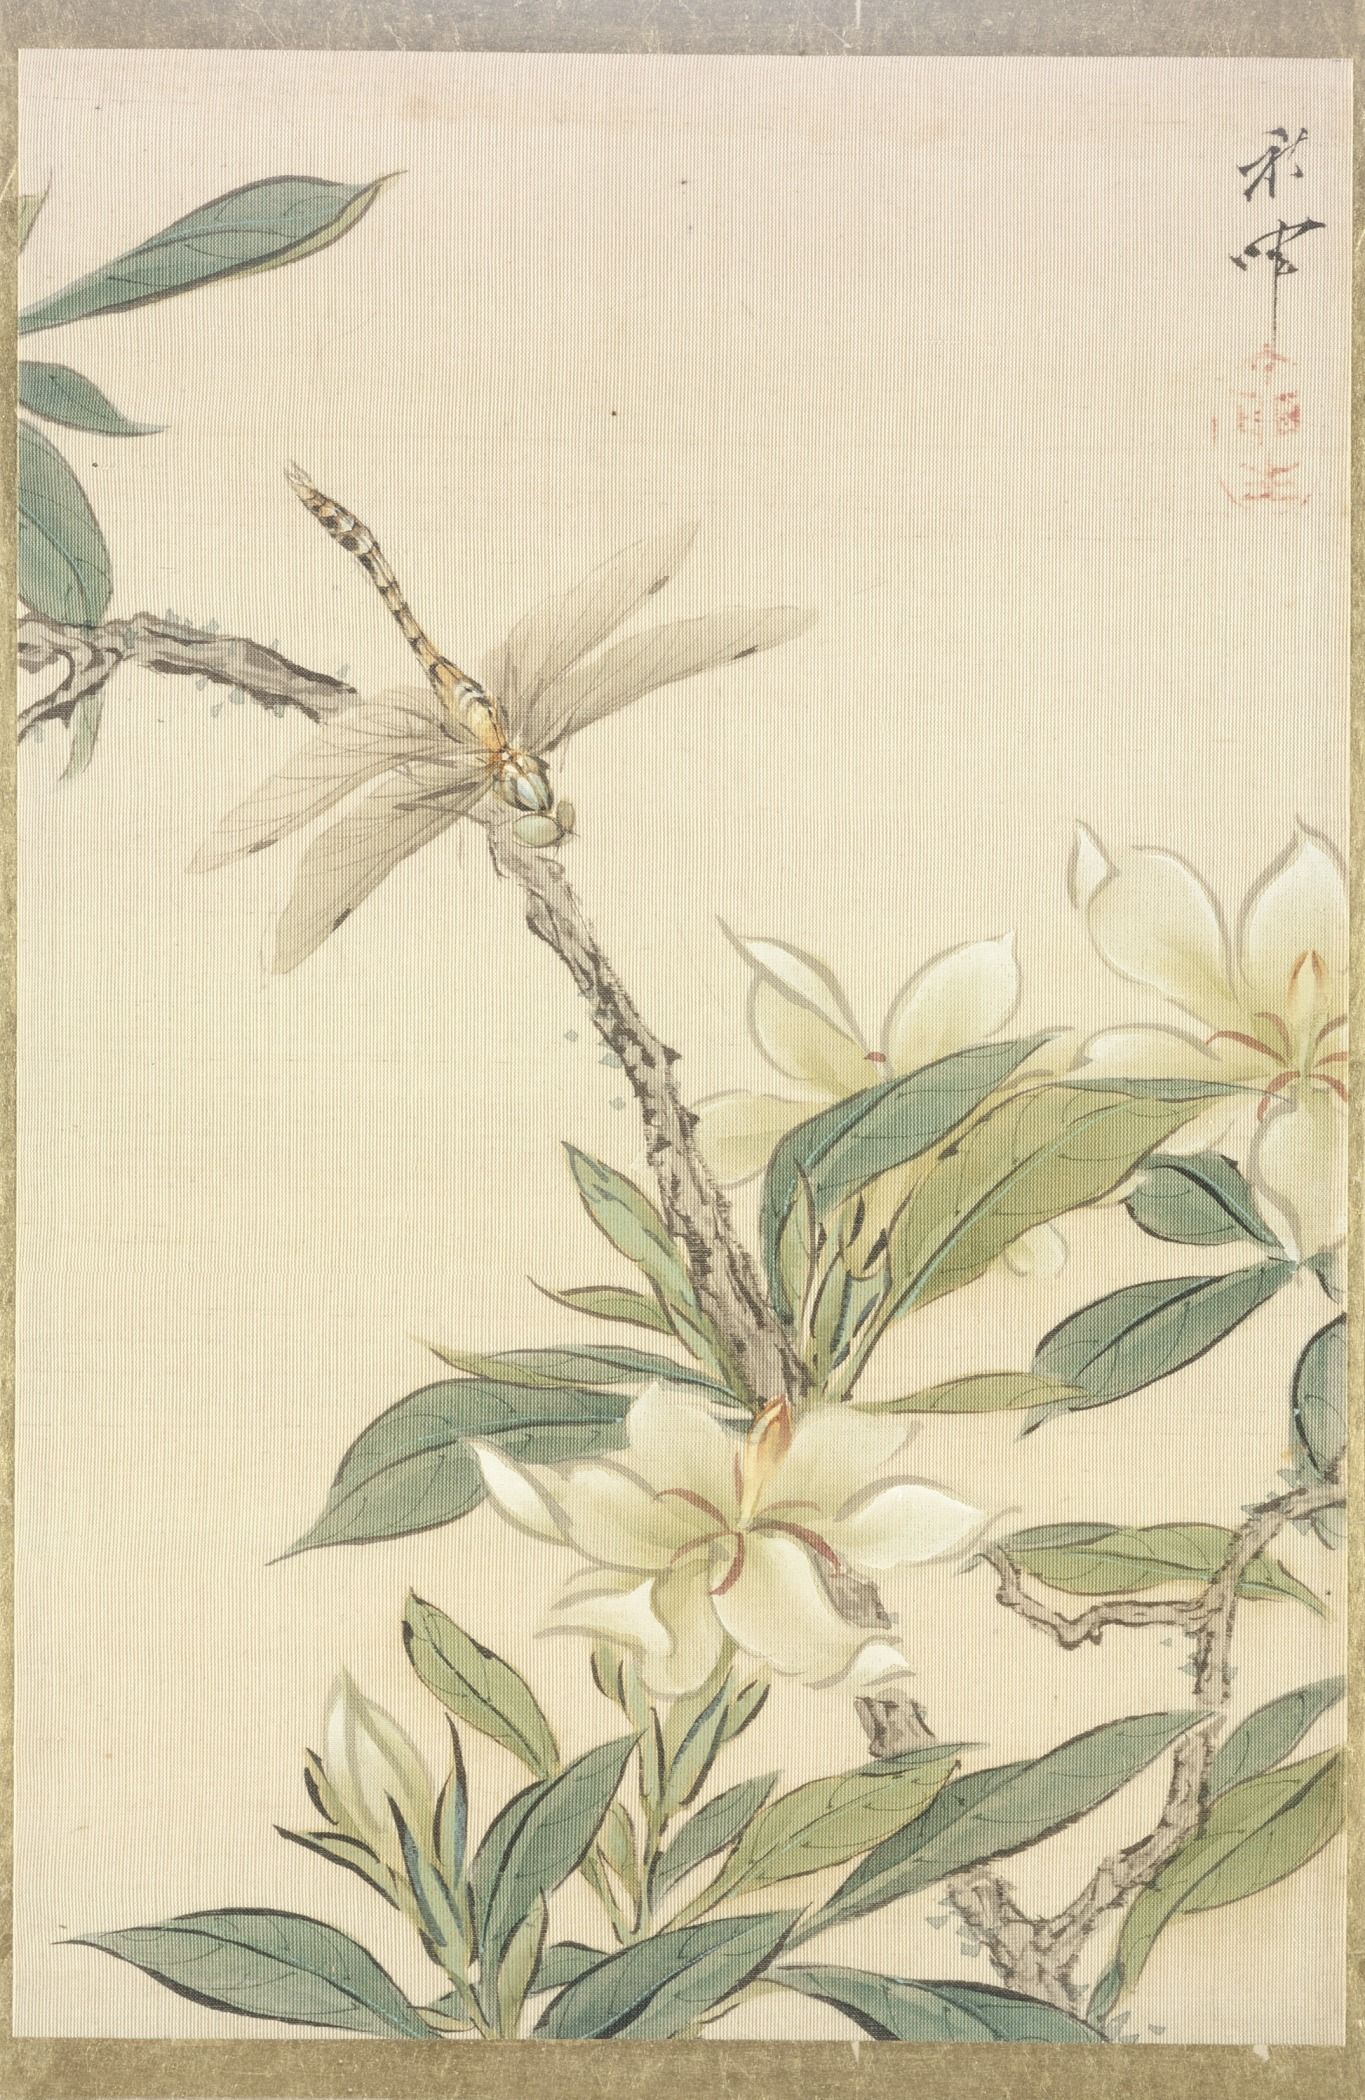 https://upload.wikimedia.org/wikipedia/commons/b/b5/Pictures_of_Flowers_and_Birds_LACMA_M.85.99_%2825_of_25%29.jpg